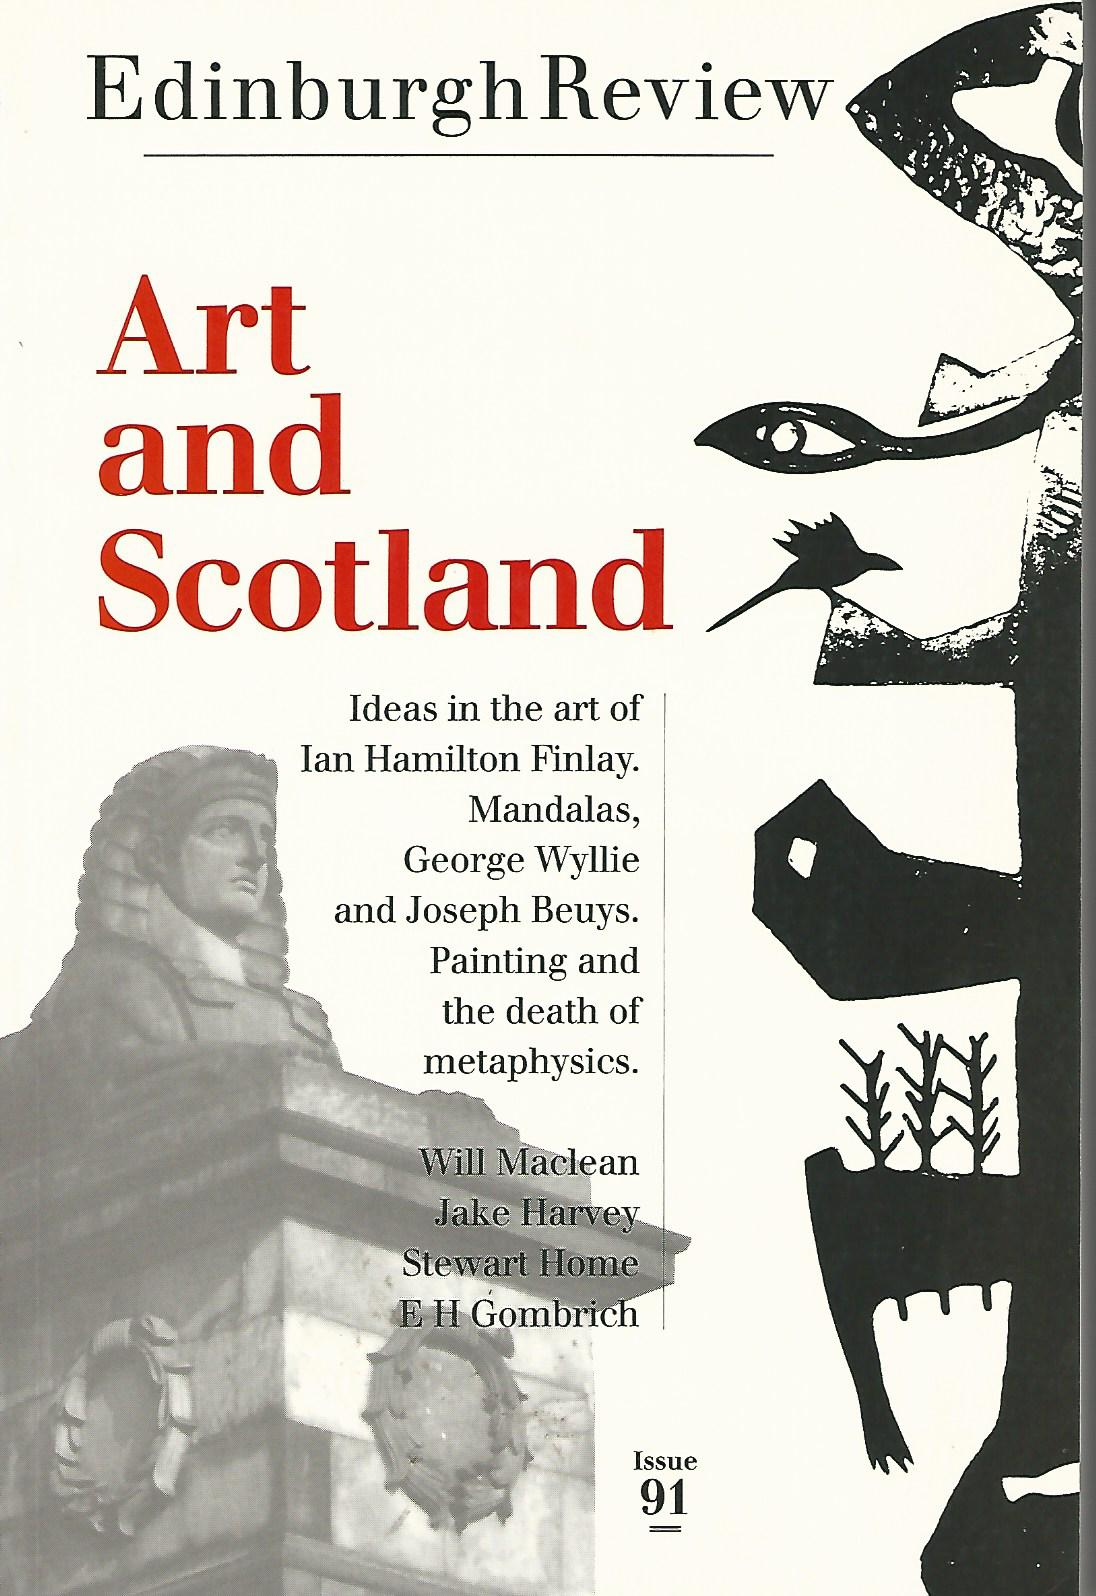 Image for Edinburgh Review Issue 91: Art and Scotland.